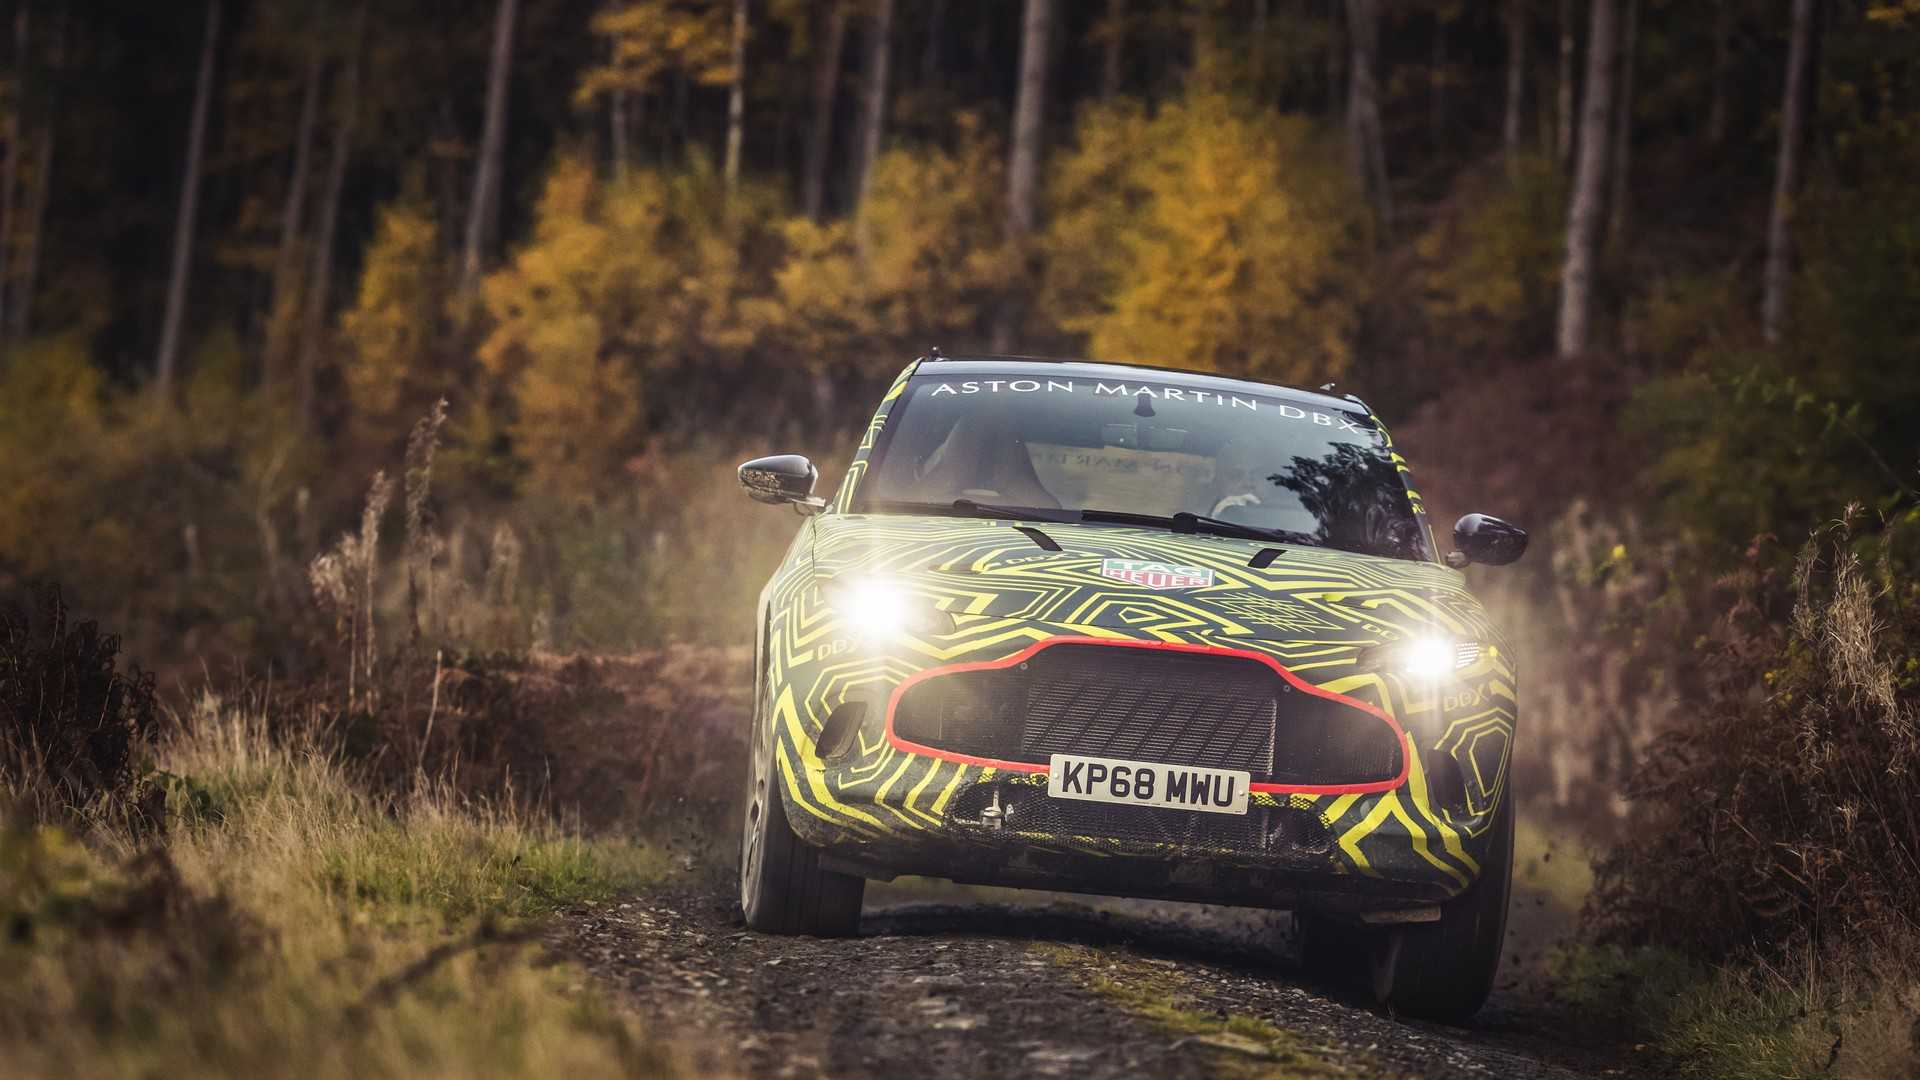 Aston Martin reveals name of first SUV